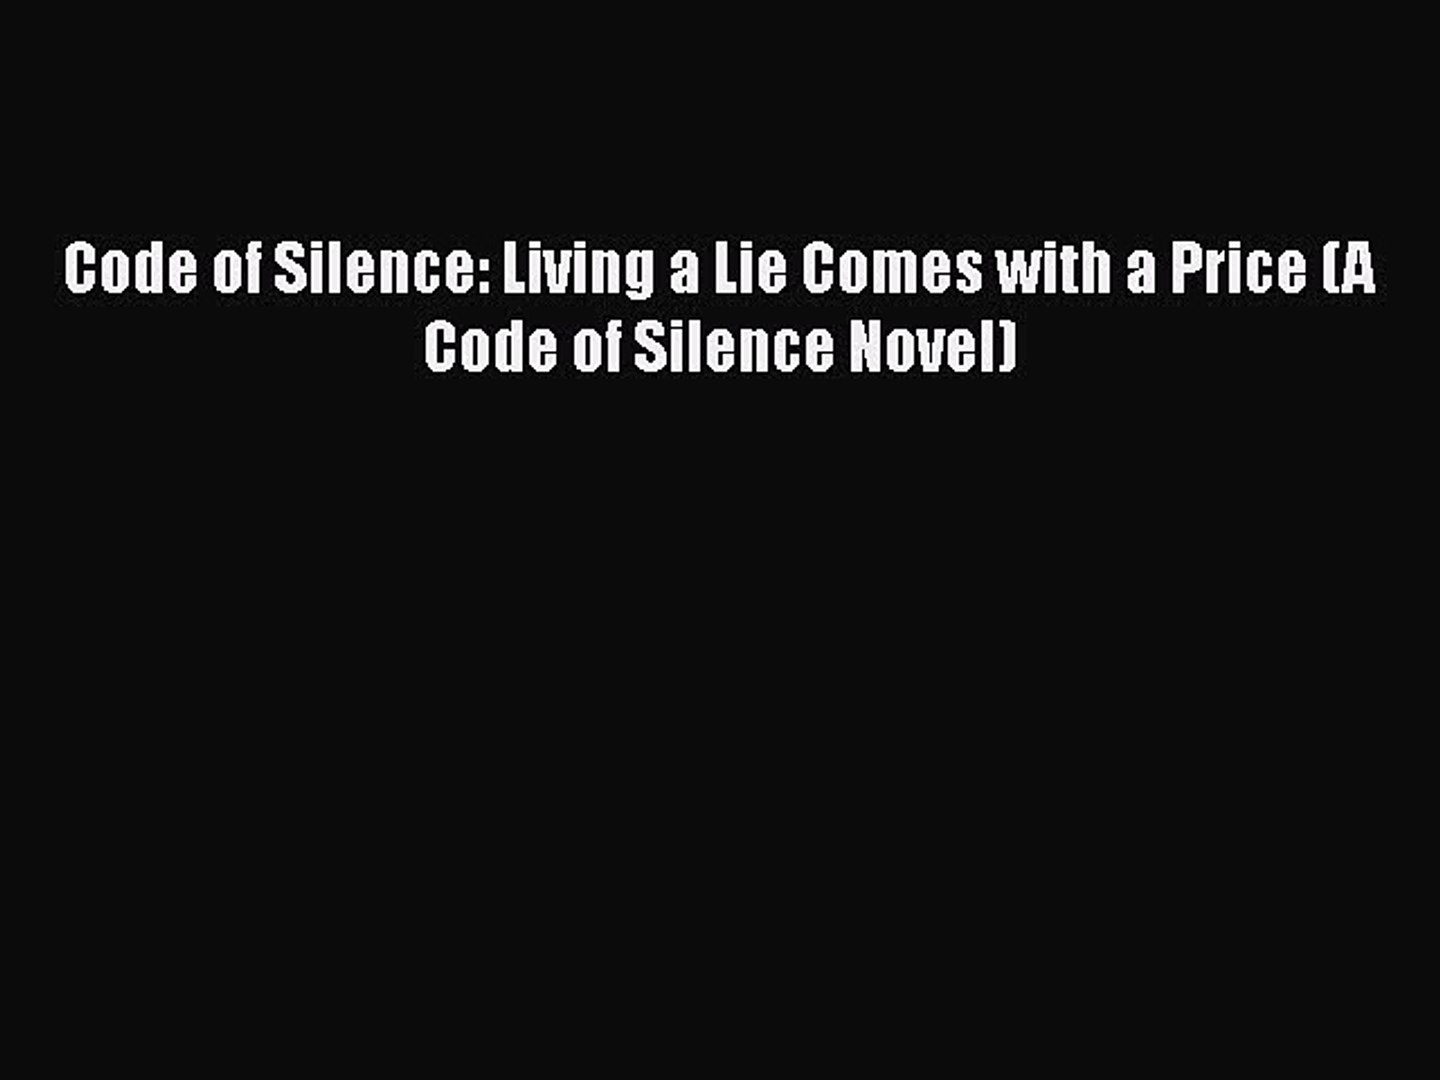 Code of Silence: Living a Lie Comes with a Price (A Code of Silence Novel)  Free Books